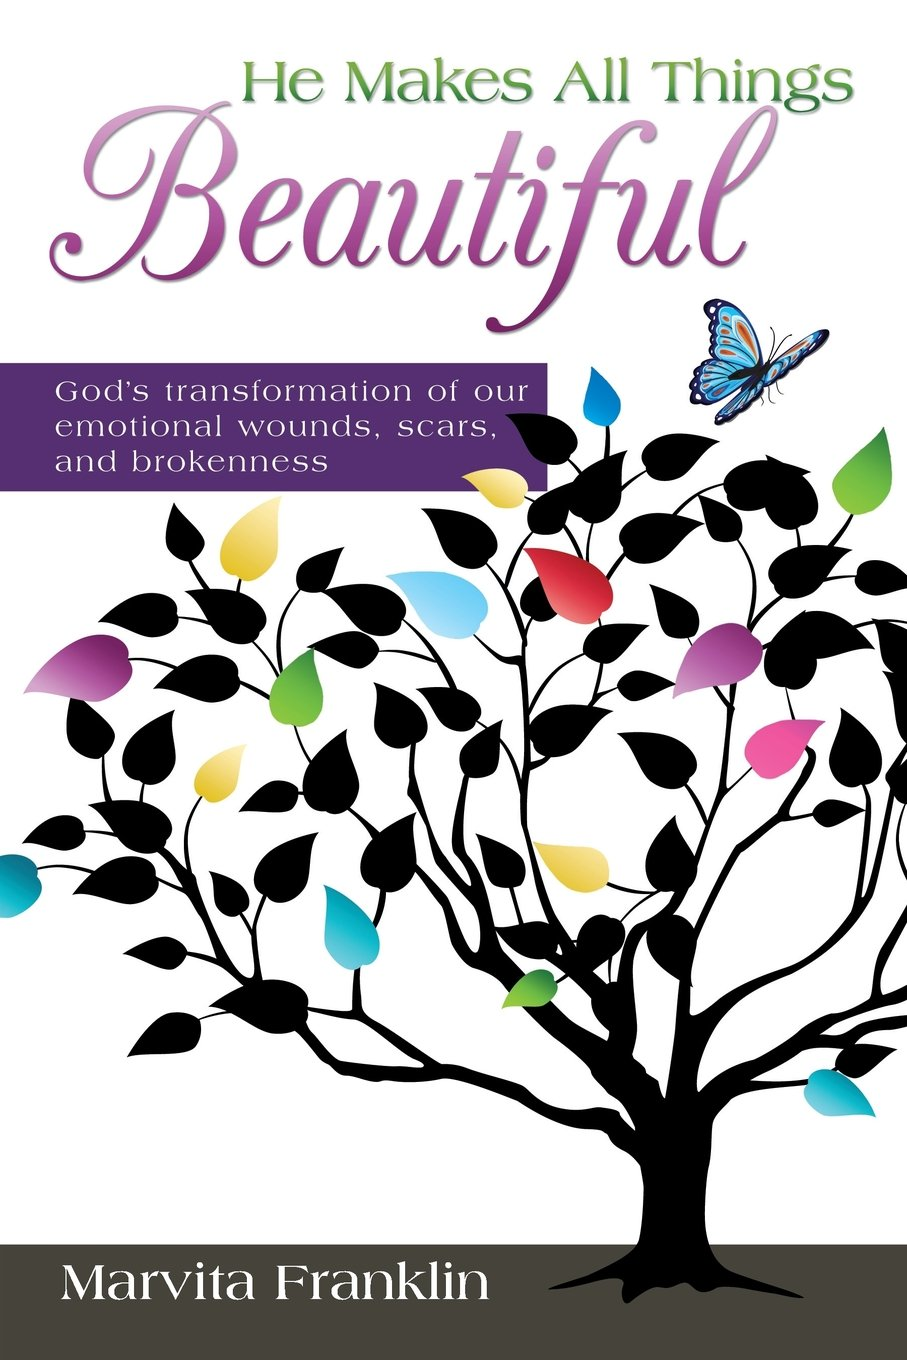 Download He Makes All Things Beautiful: God's Transformation of Our Emotional Wounds, Scars, and Brokenness pdf